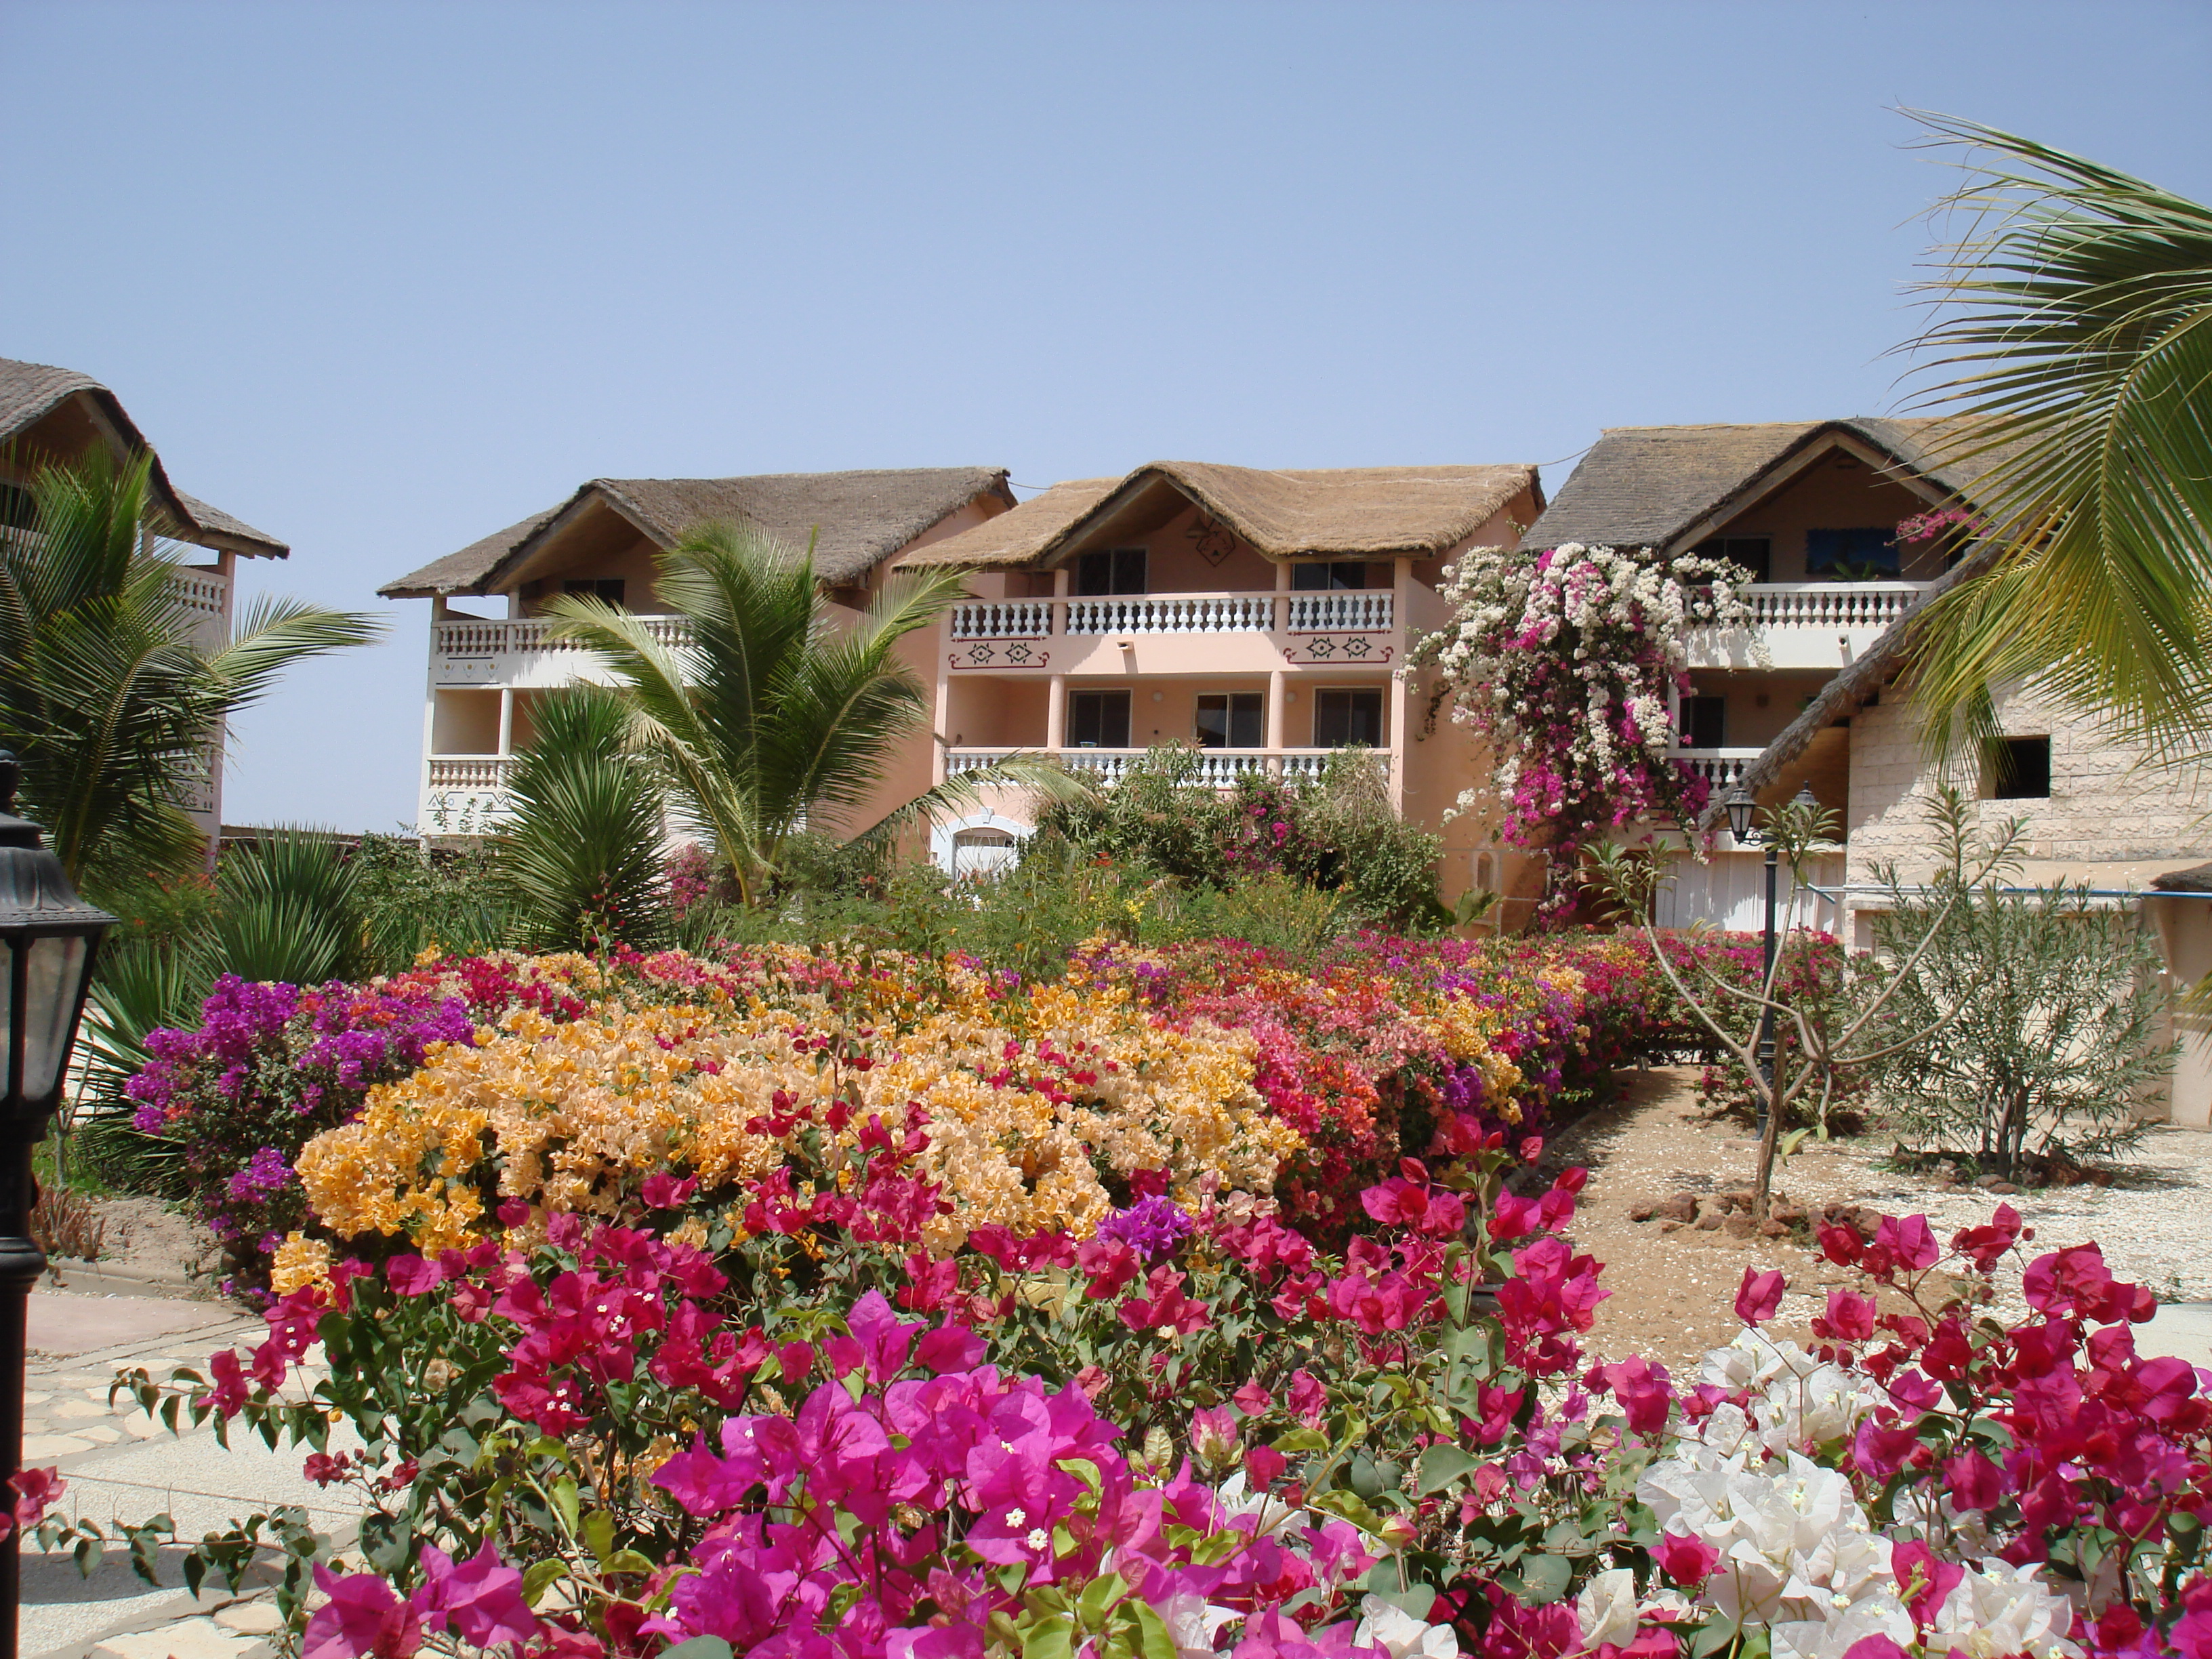 larger-hotel-chains-have-invested-heavily-in-the-saly-area-with-encouragement-from-the-senegal-government.jpg